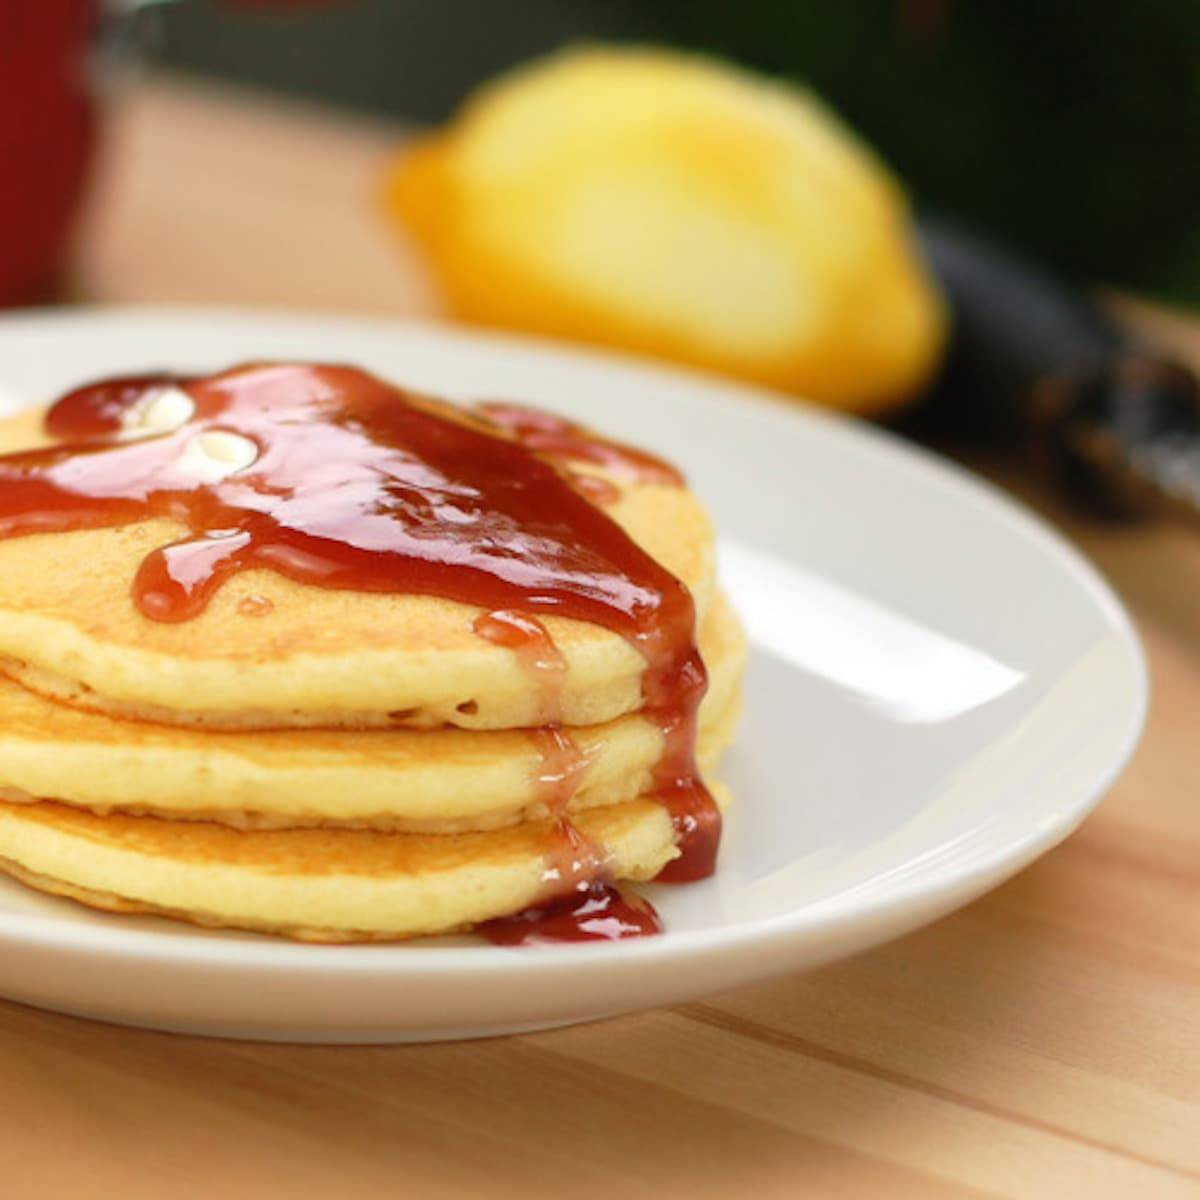 Amazing Lemon Pancakes that are light, fluffy, and easy to make topped with a blackberry syrup made from blackberry jam. Delicious for a weekend brunch! | pinchofyum.com